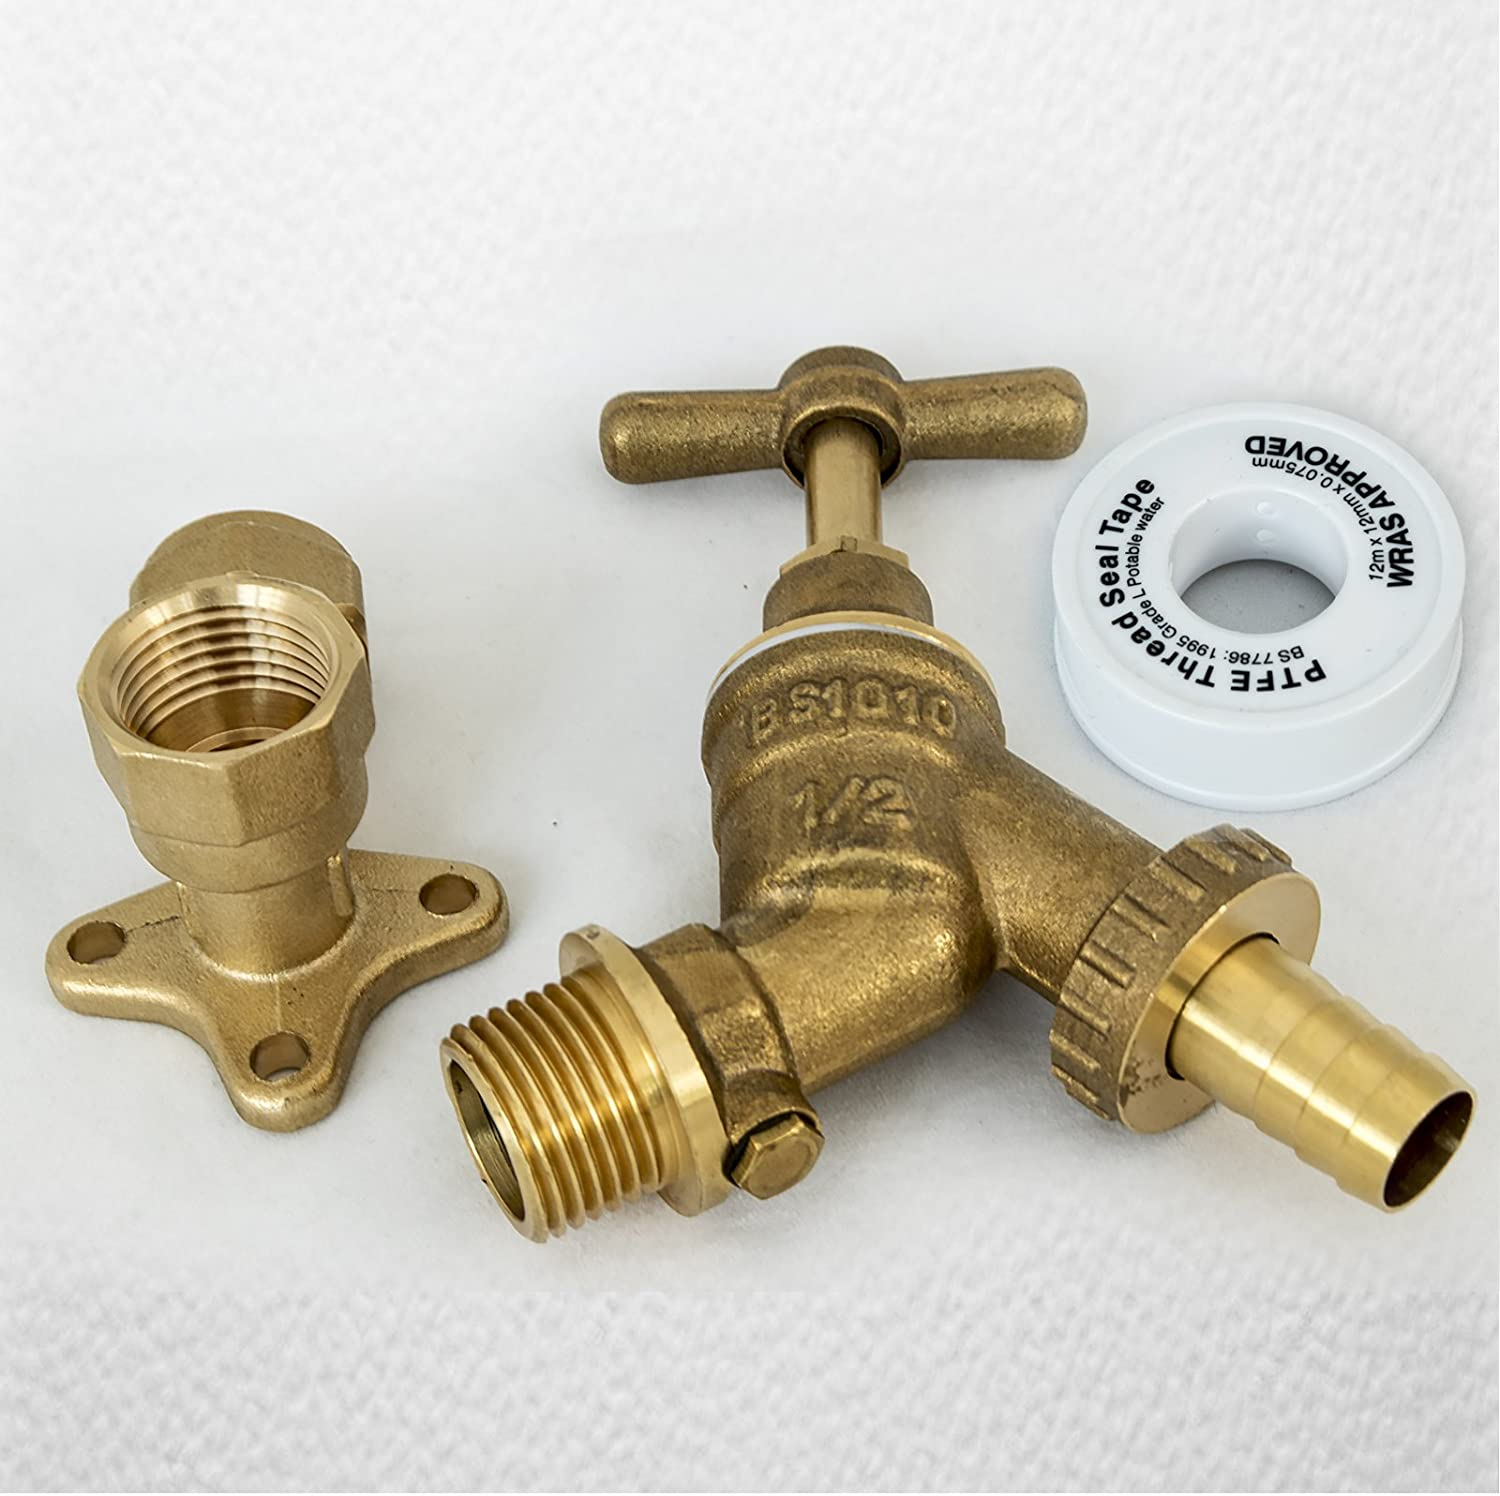 1/2-inch Brass Hose Union Bib Tap with Hose Adaptor: Amazon.co.uk ...